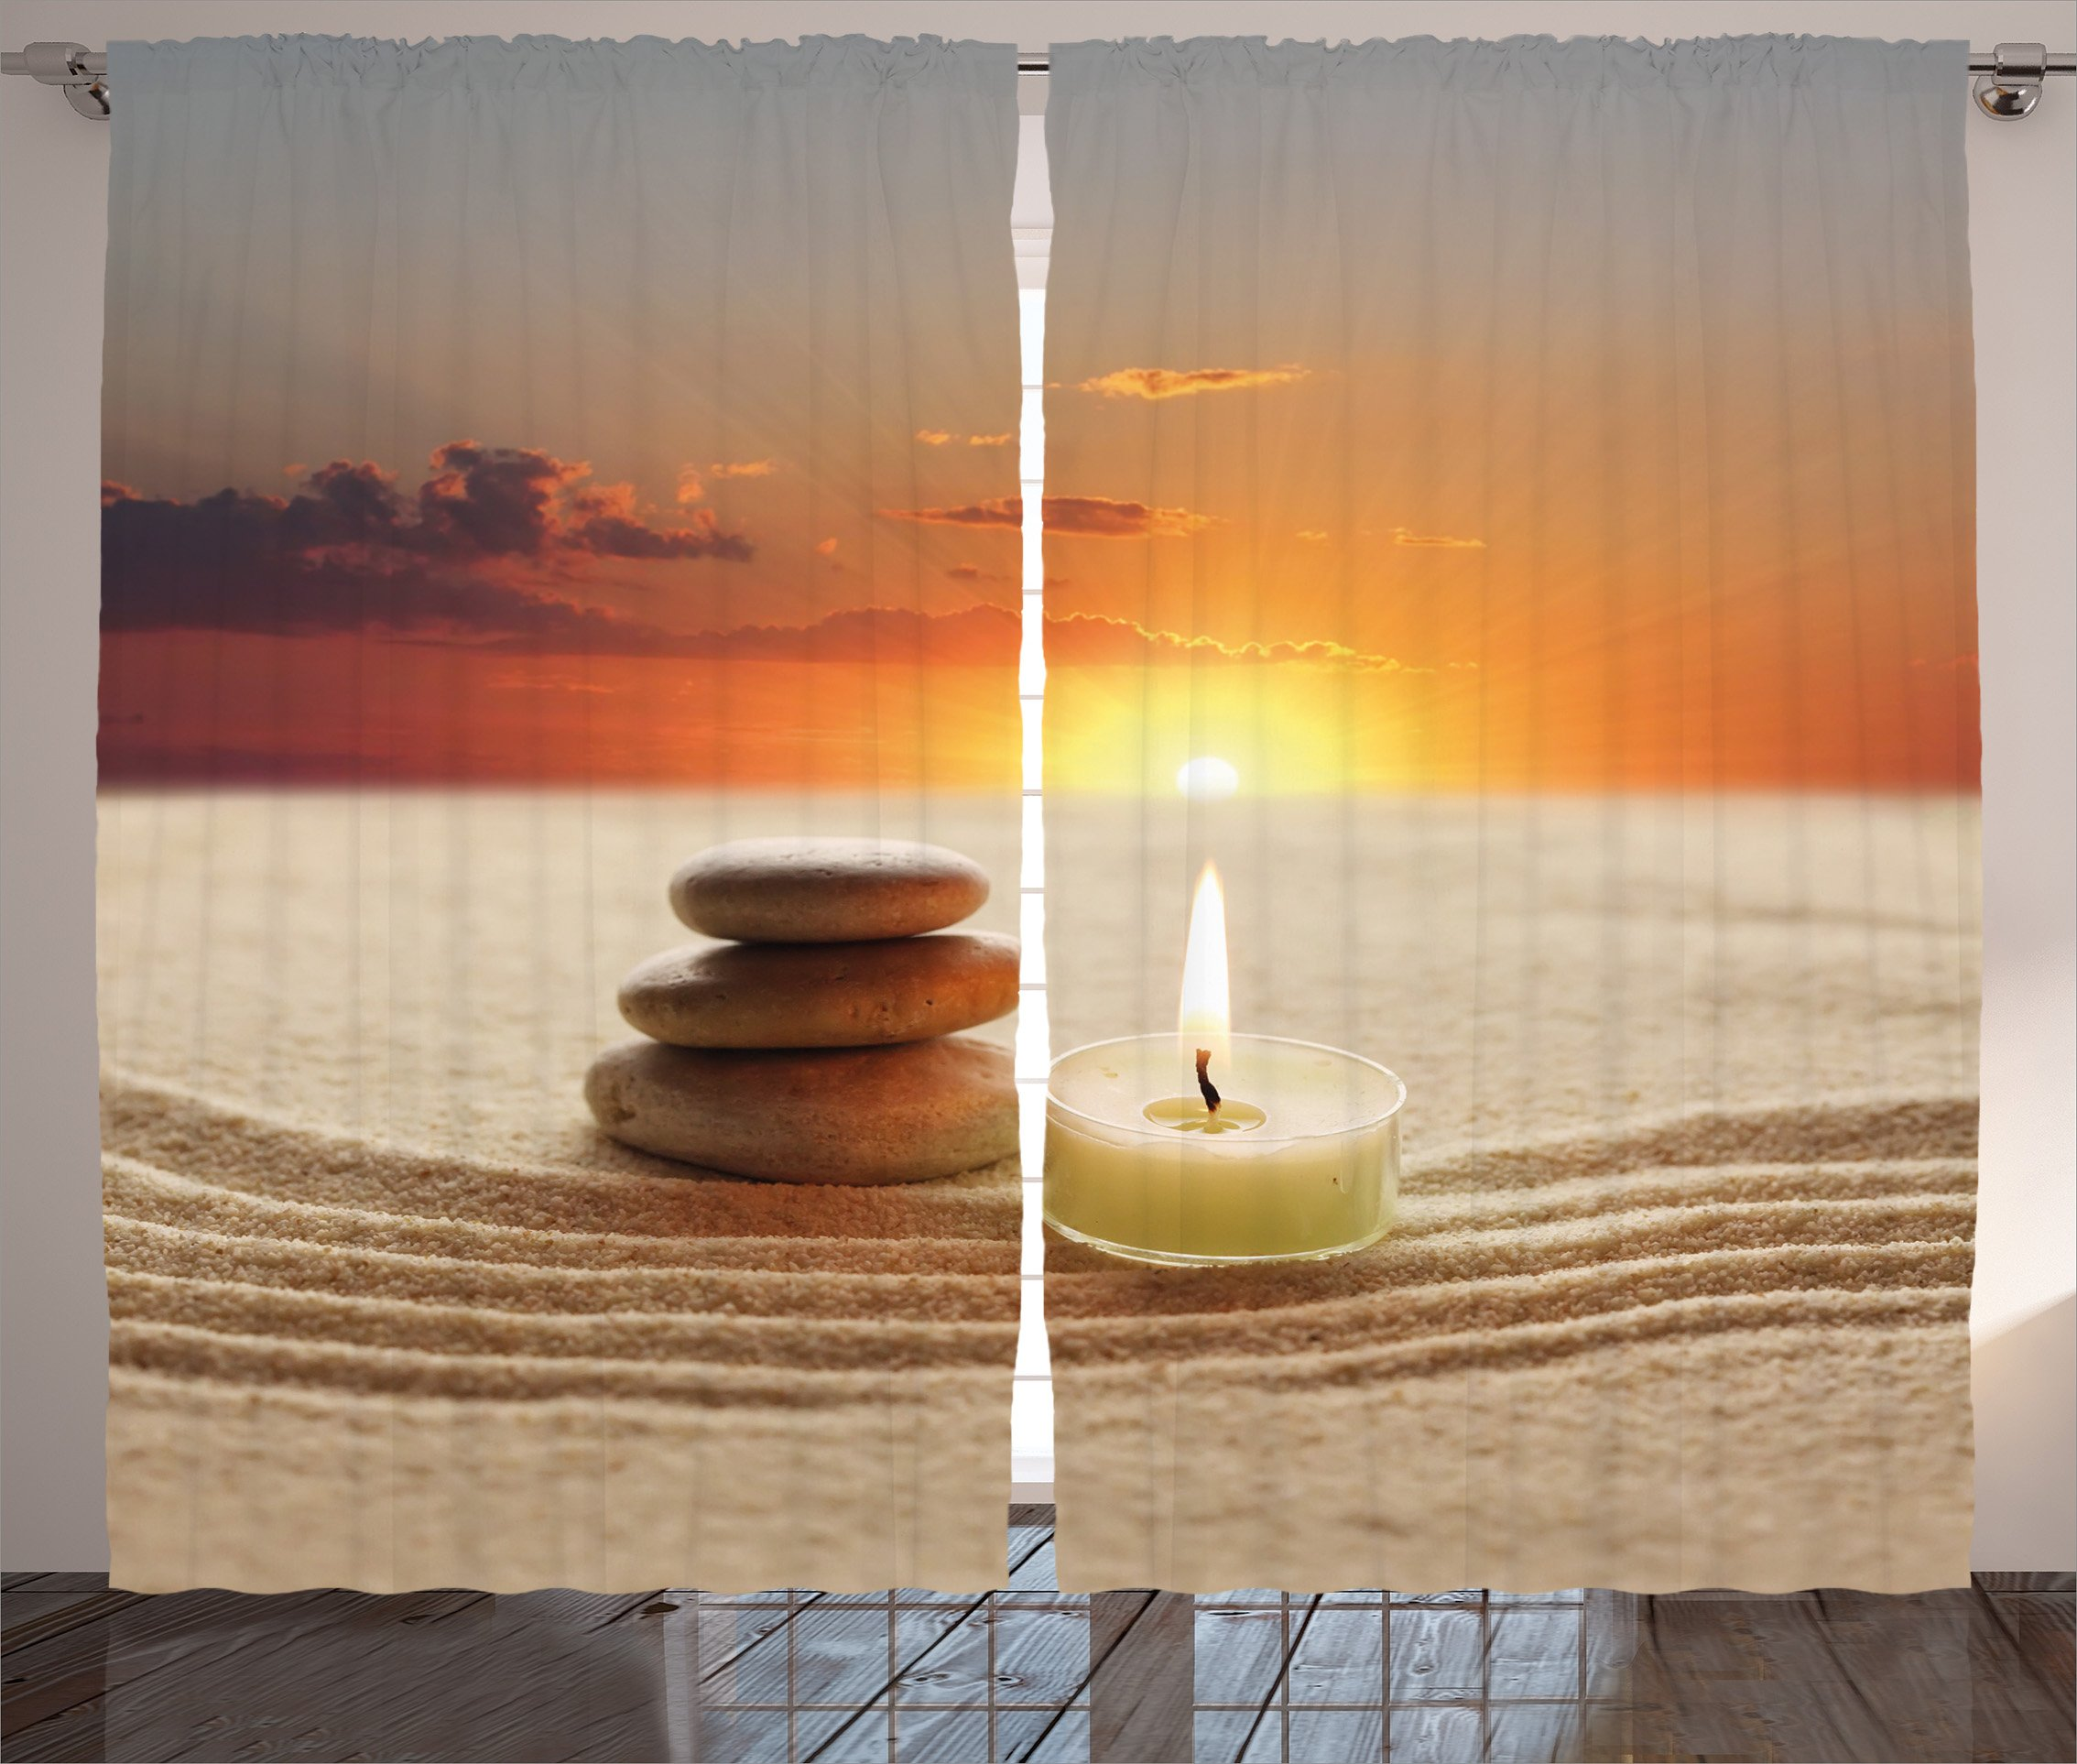 Ambesonne Spa Decor Curtains, Little Candle with Three Stones Middle of Sand with Sunset Landscape, Living Room Bedroom Window Drapes 2 Panel Set, 108W X 90L inches, White Brown and Orange